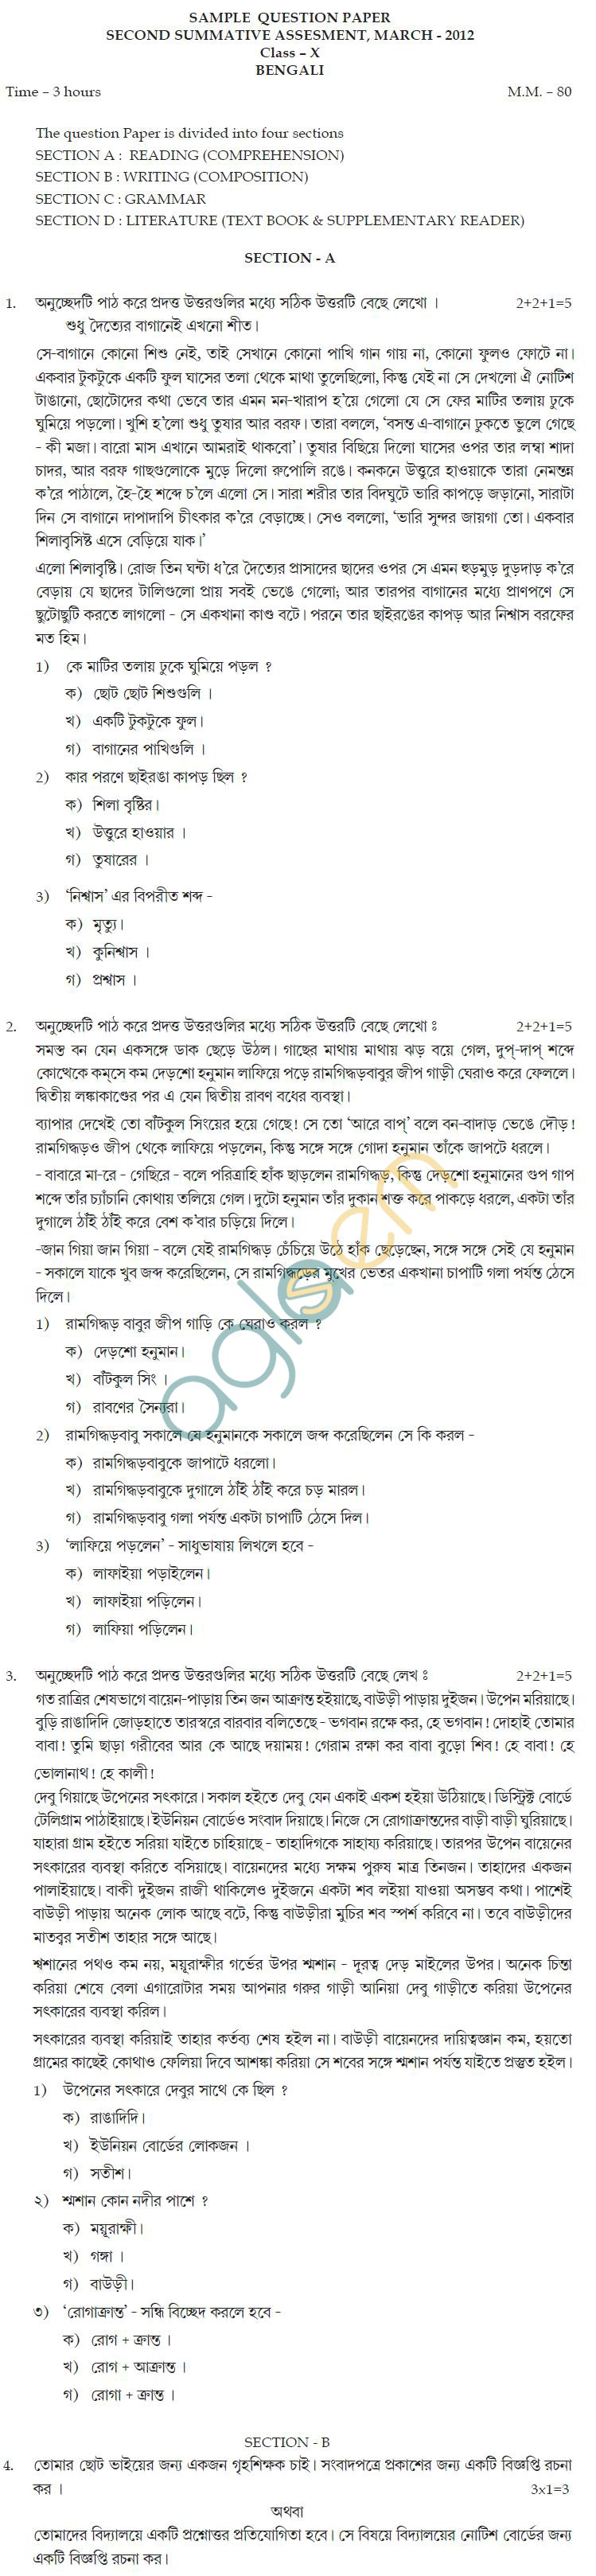 CBSE Class X Sample Papers 2013 (Second Term) Bengali